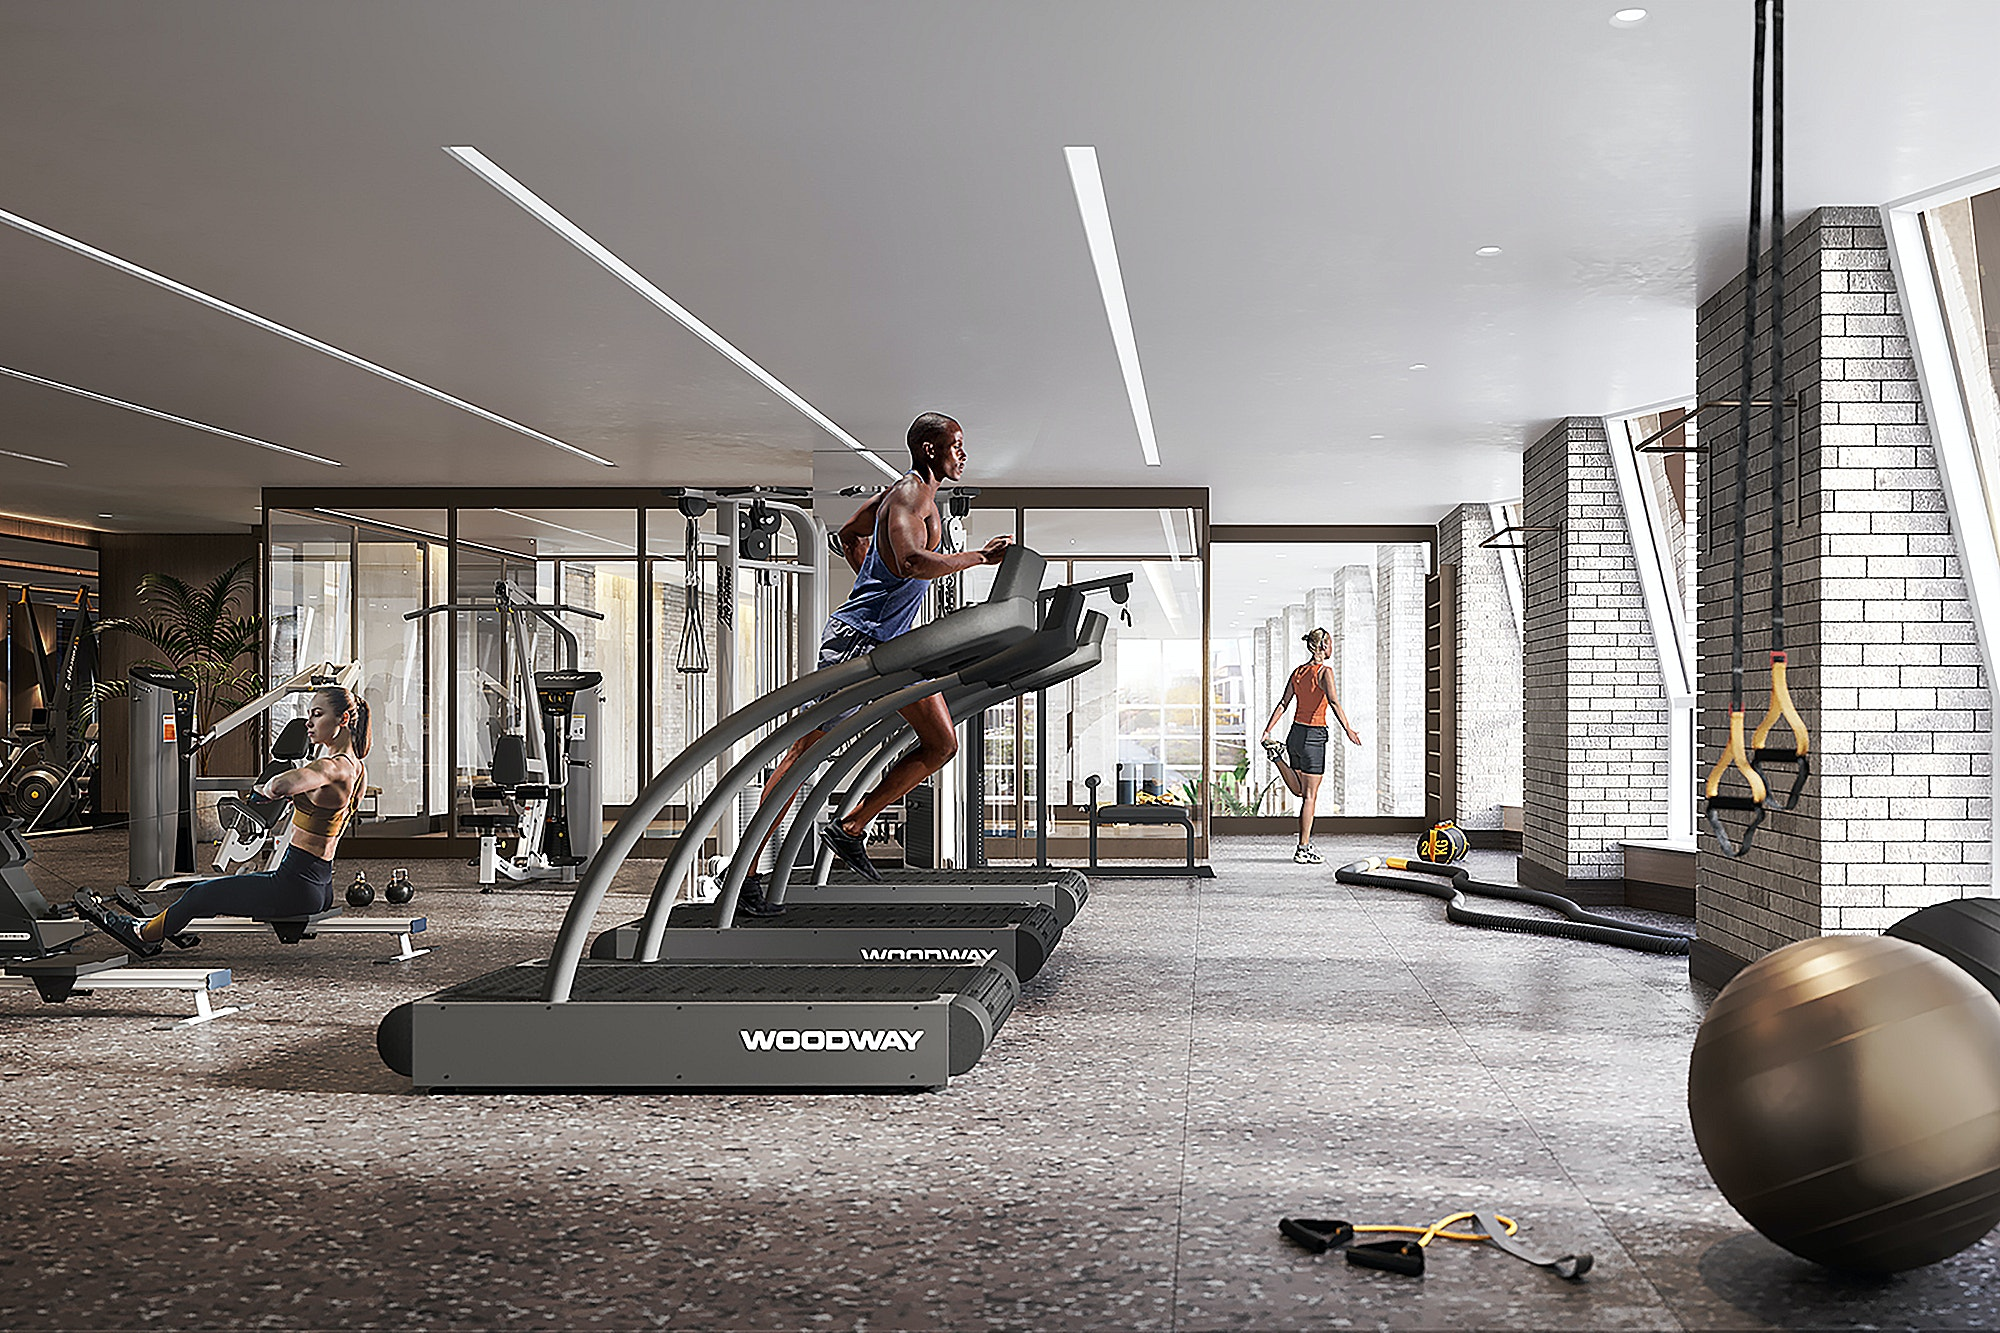 Related-Lantern-House-gym-multifamily-interior